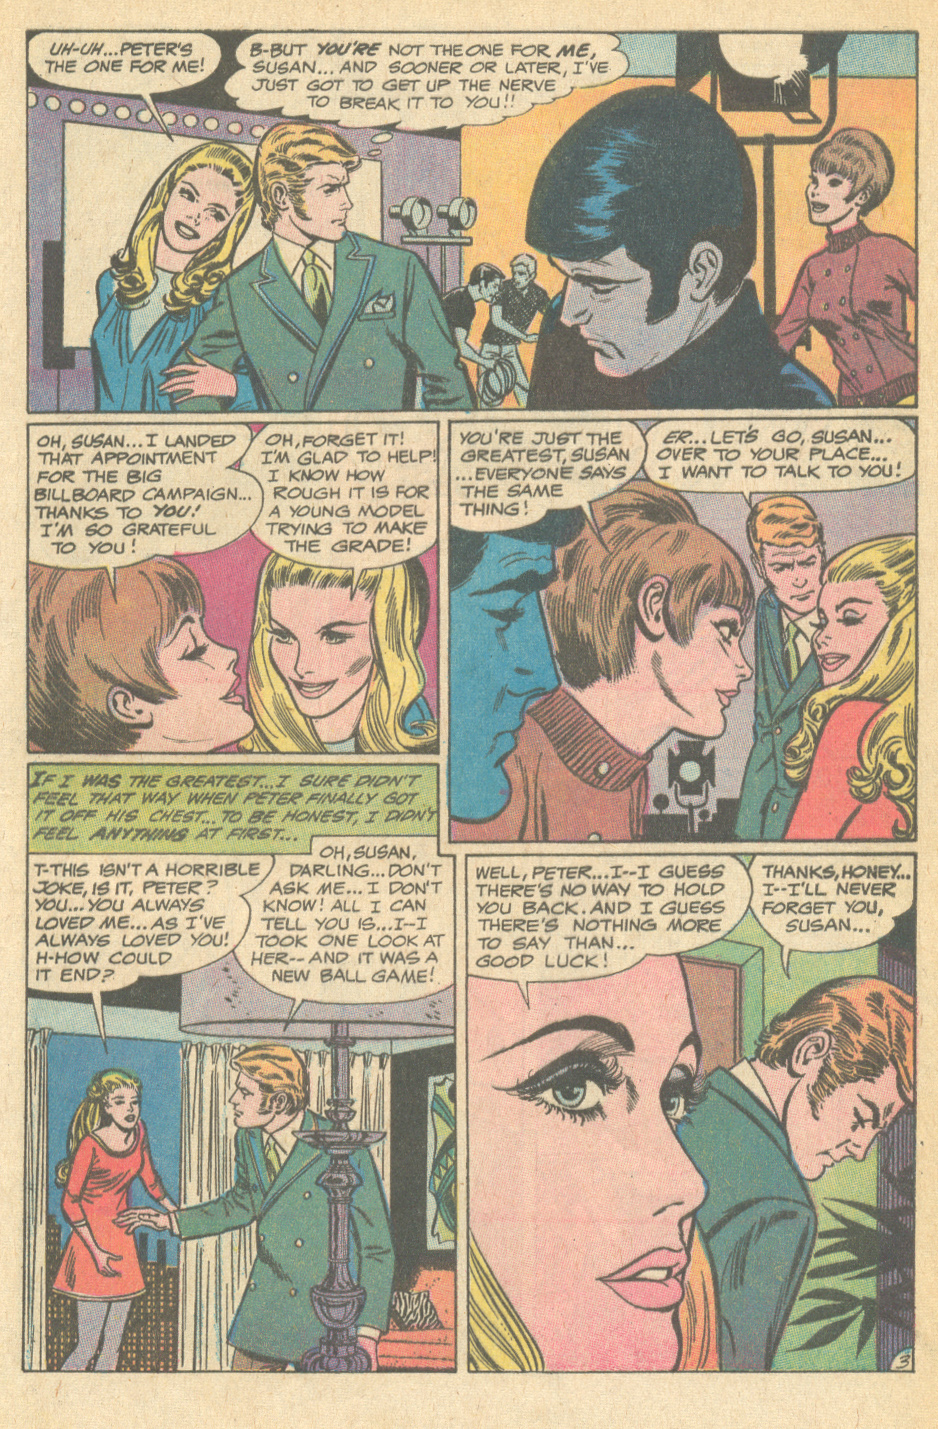 Suicide in romance comic books story dramatic